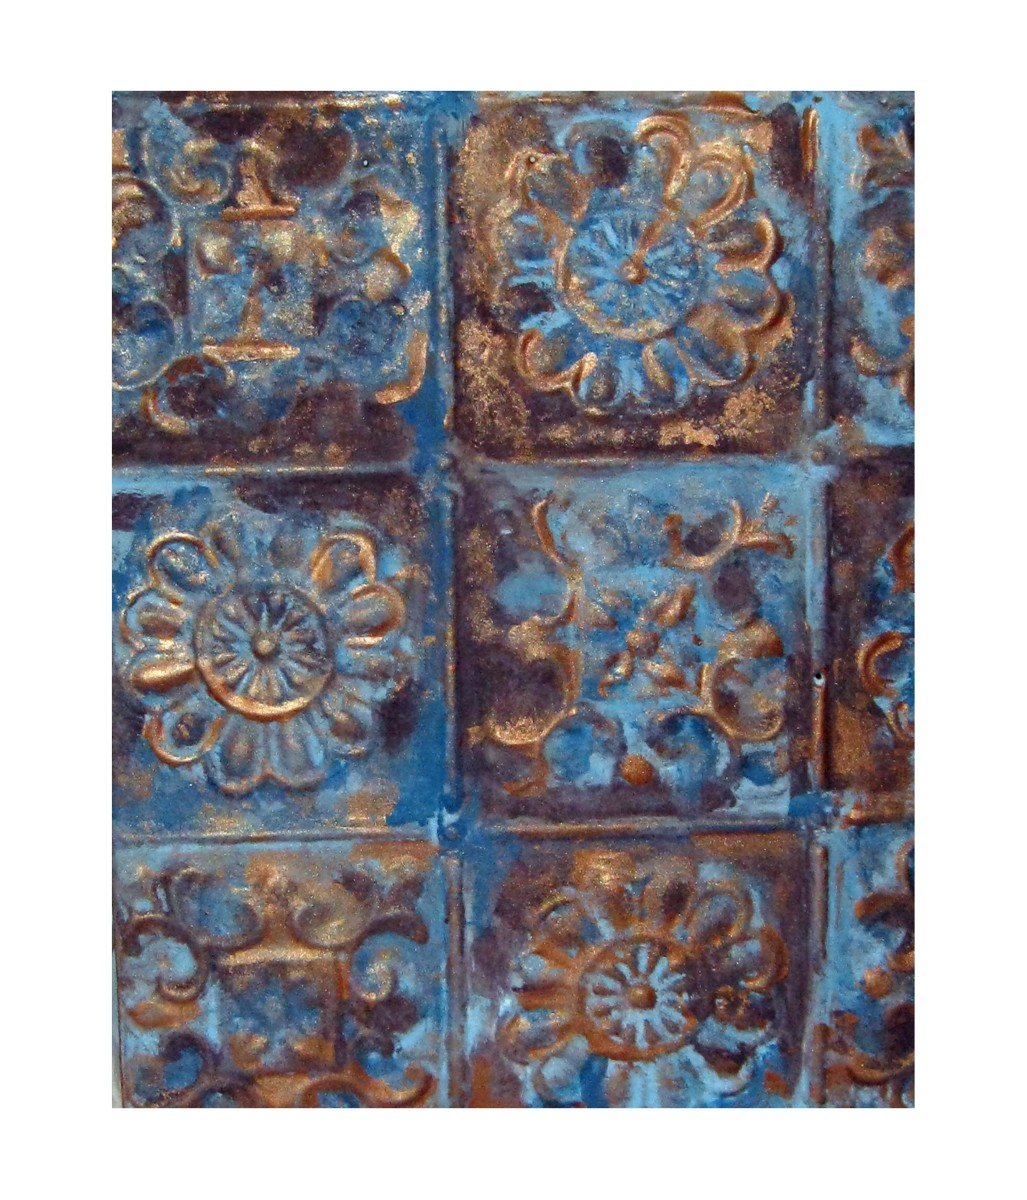 Tin Ceiling Panel Wall Hanging (photo by Dolores Monet)